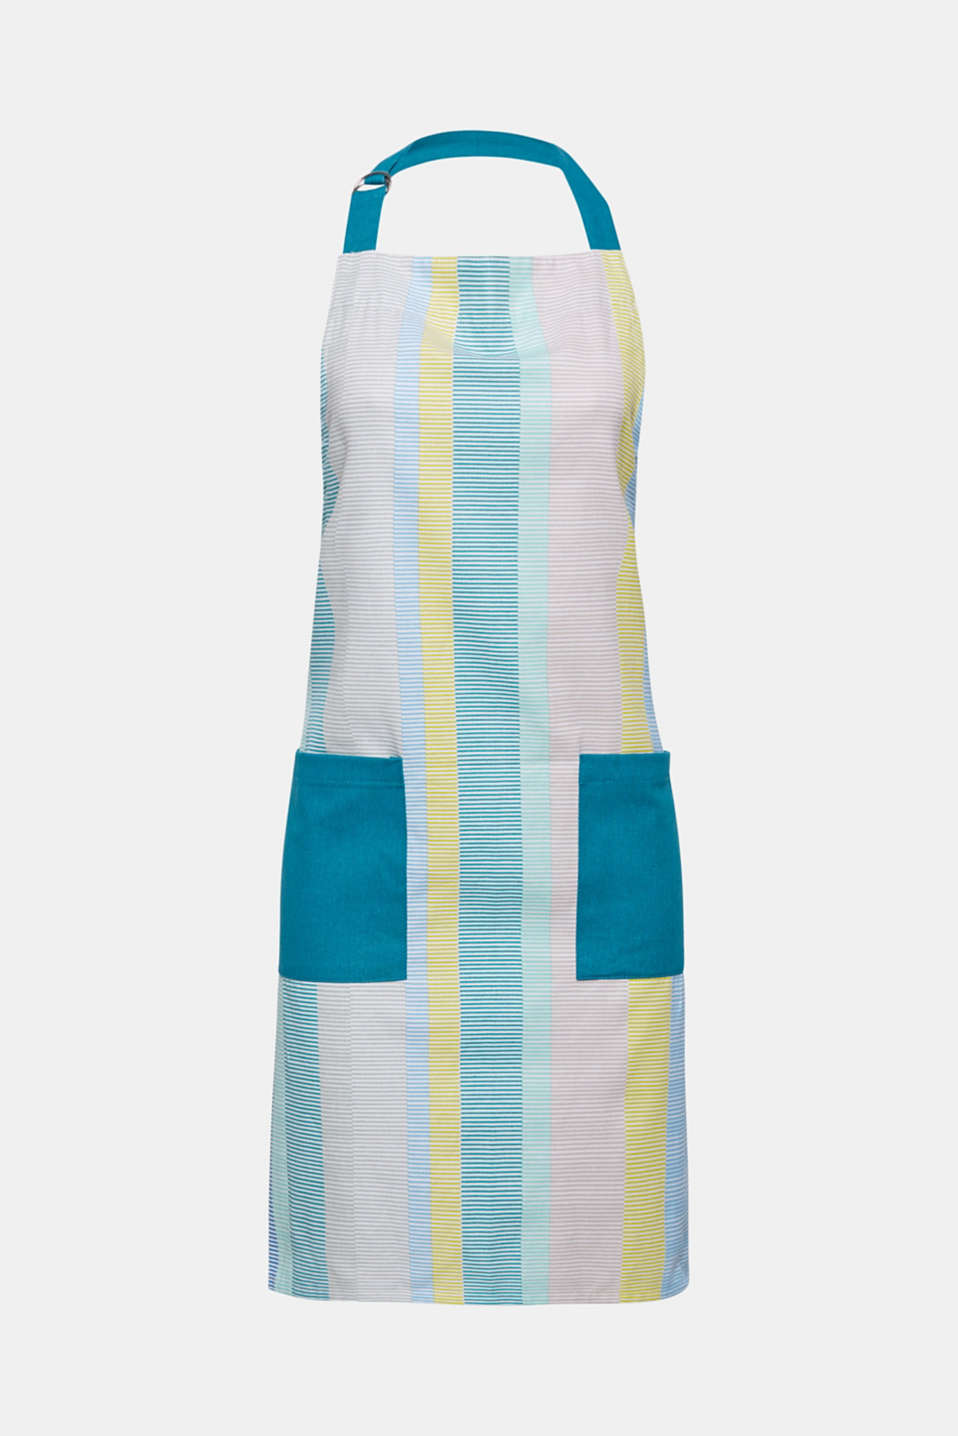 Esprit - Apron with stripes, 100% cotton